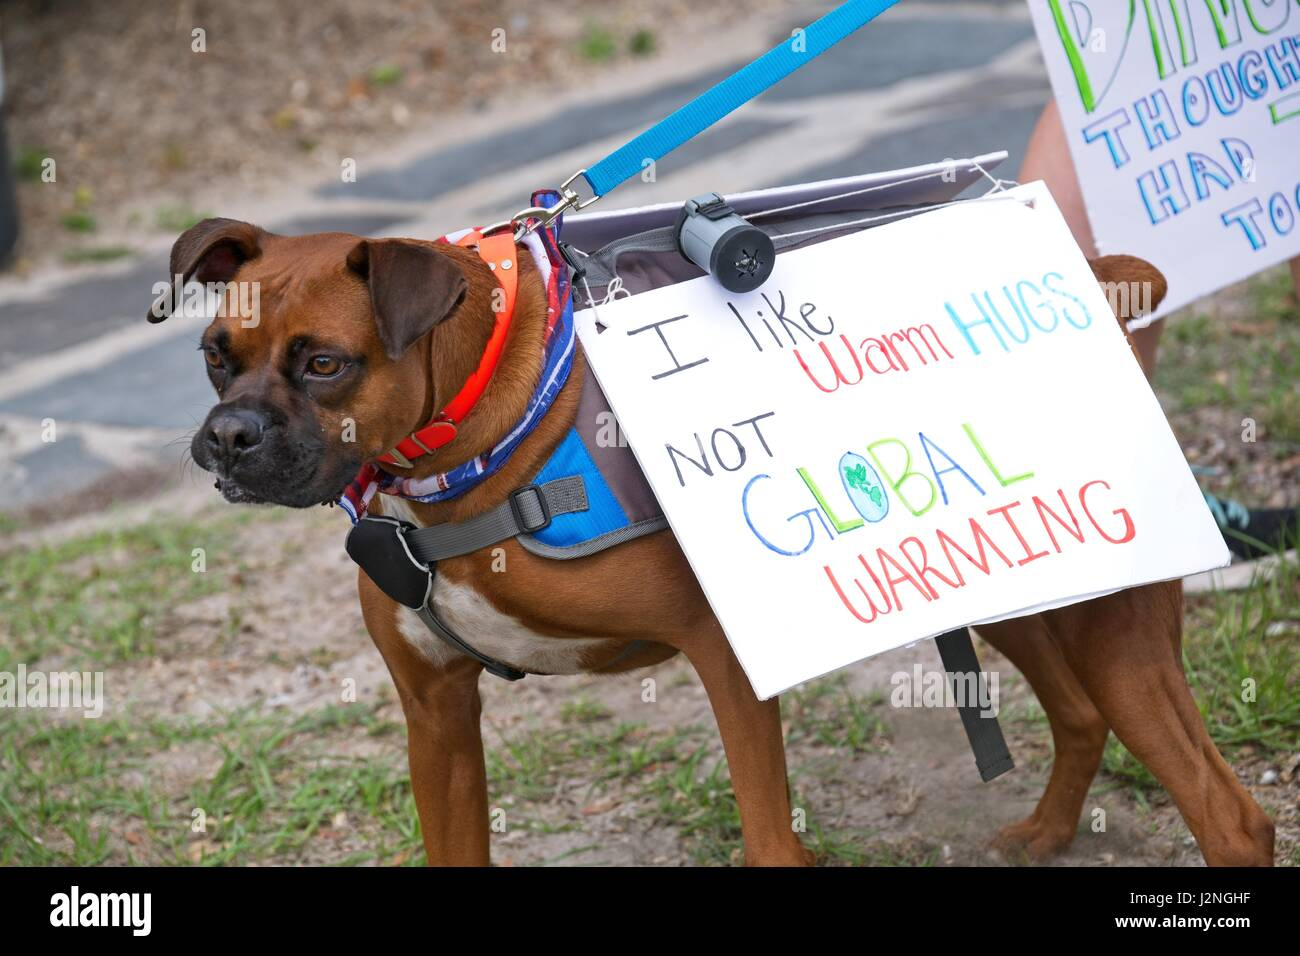 Charleston, South Carolina, USA. 29th Apr, 2017. A dog is decorated with a protest sign during the People's - Stock Image